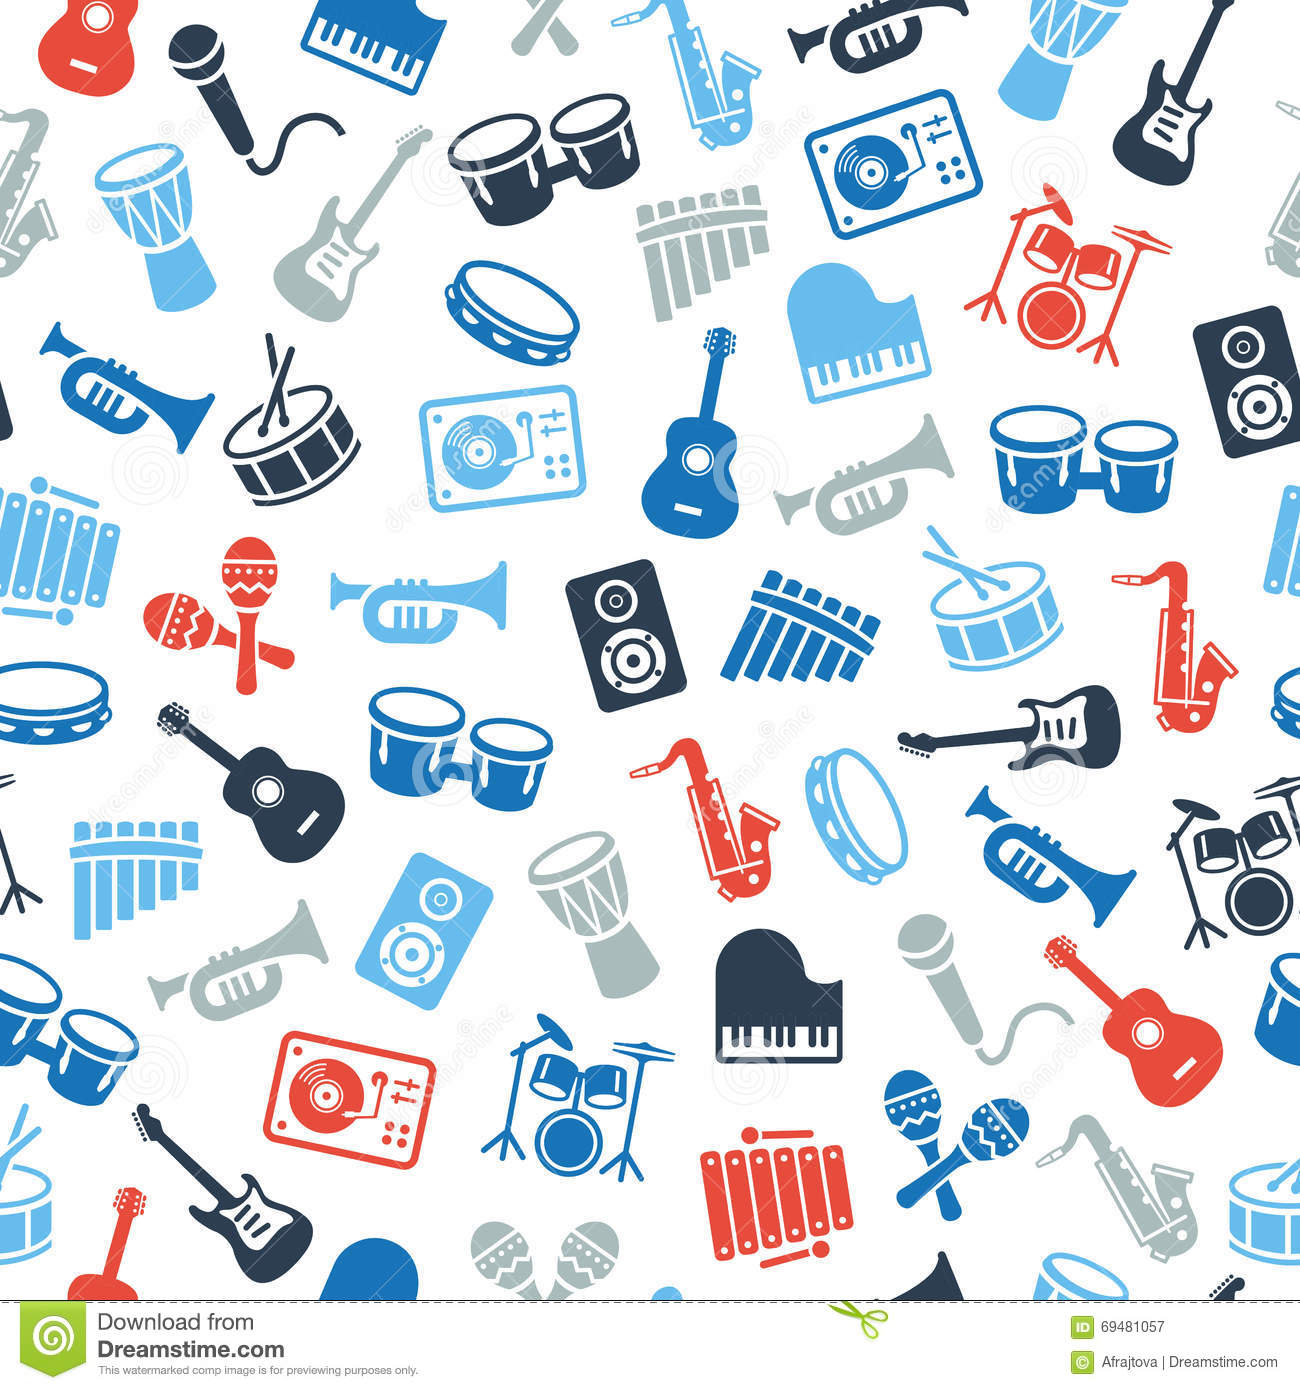 Good Wallpaper Music Pattern - musical-instruments-pattern-icons-wallpaper-seamless-can-be-used-print-materials-websites-subjects-related-to-music-69481057  Collection_892913.jpg